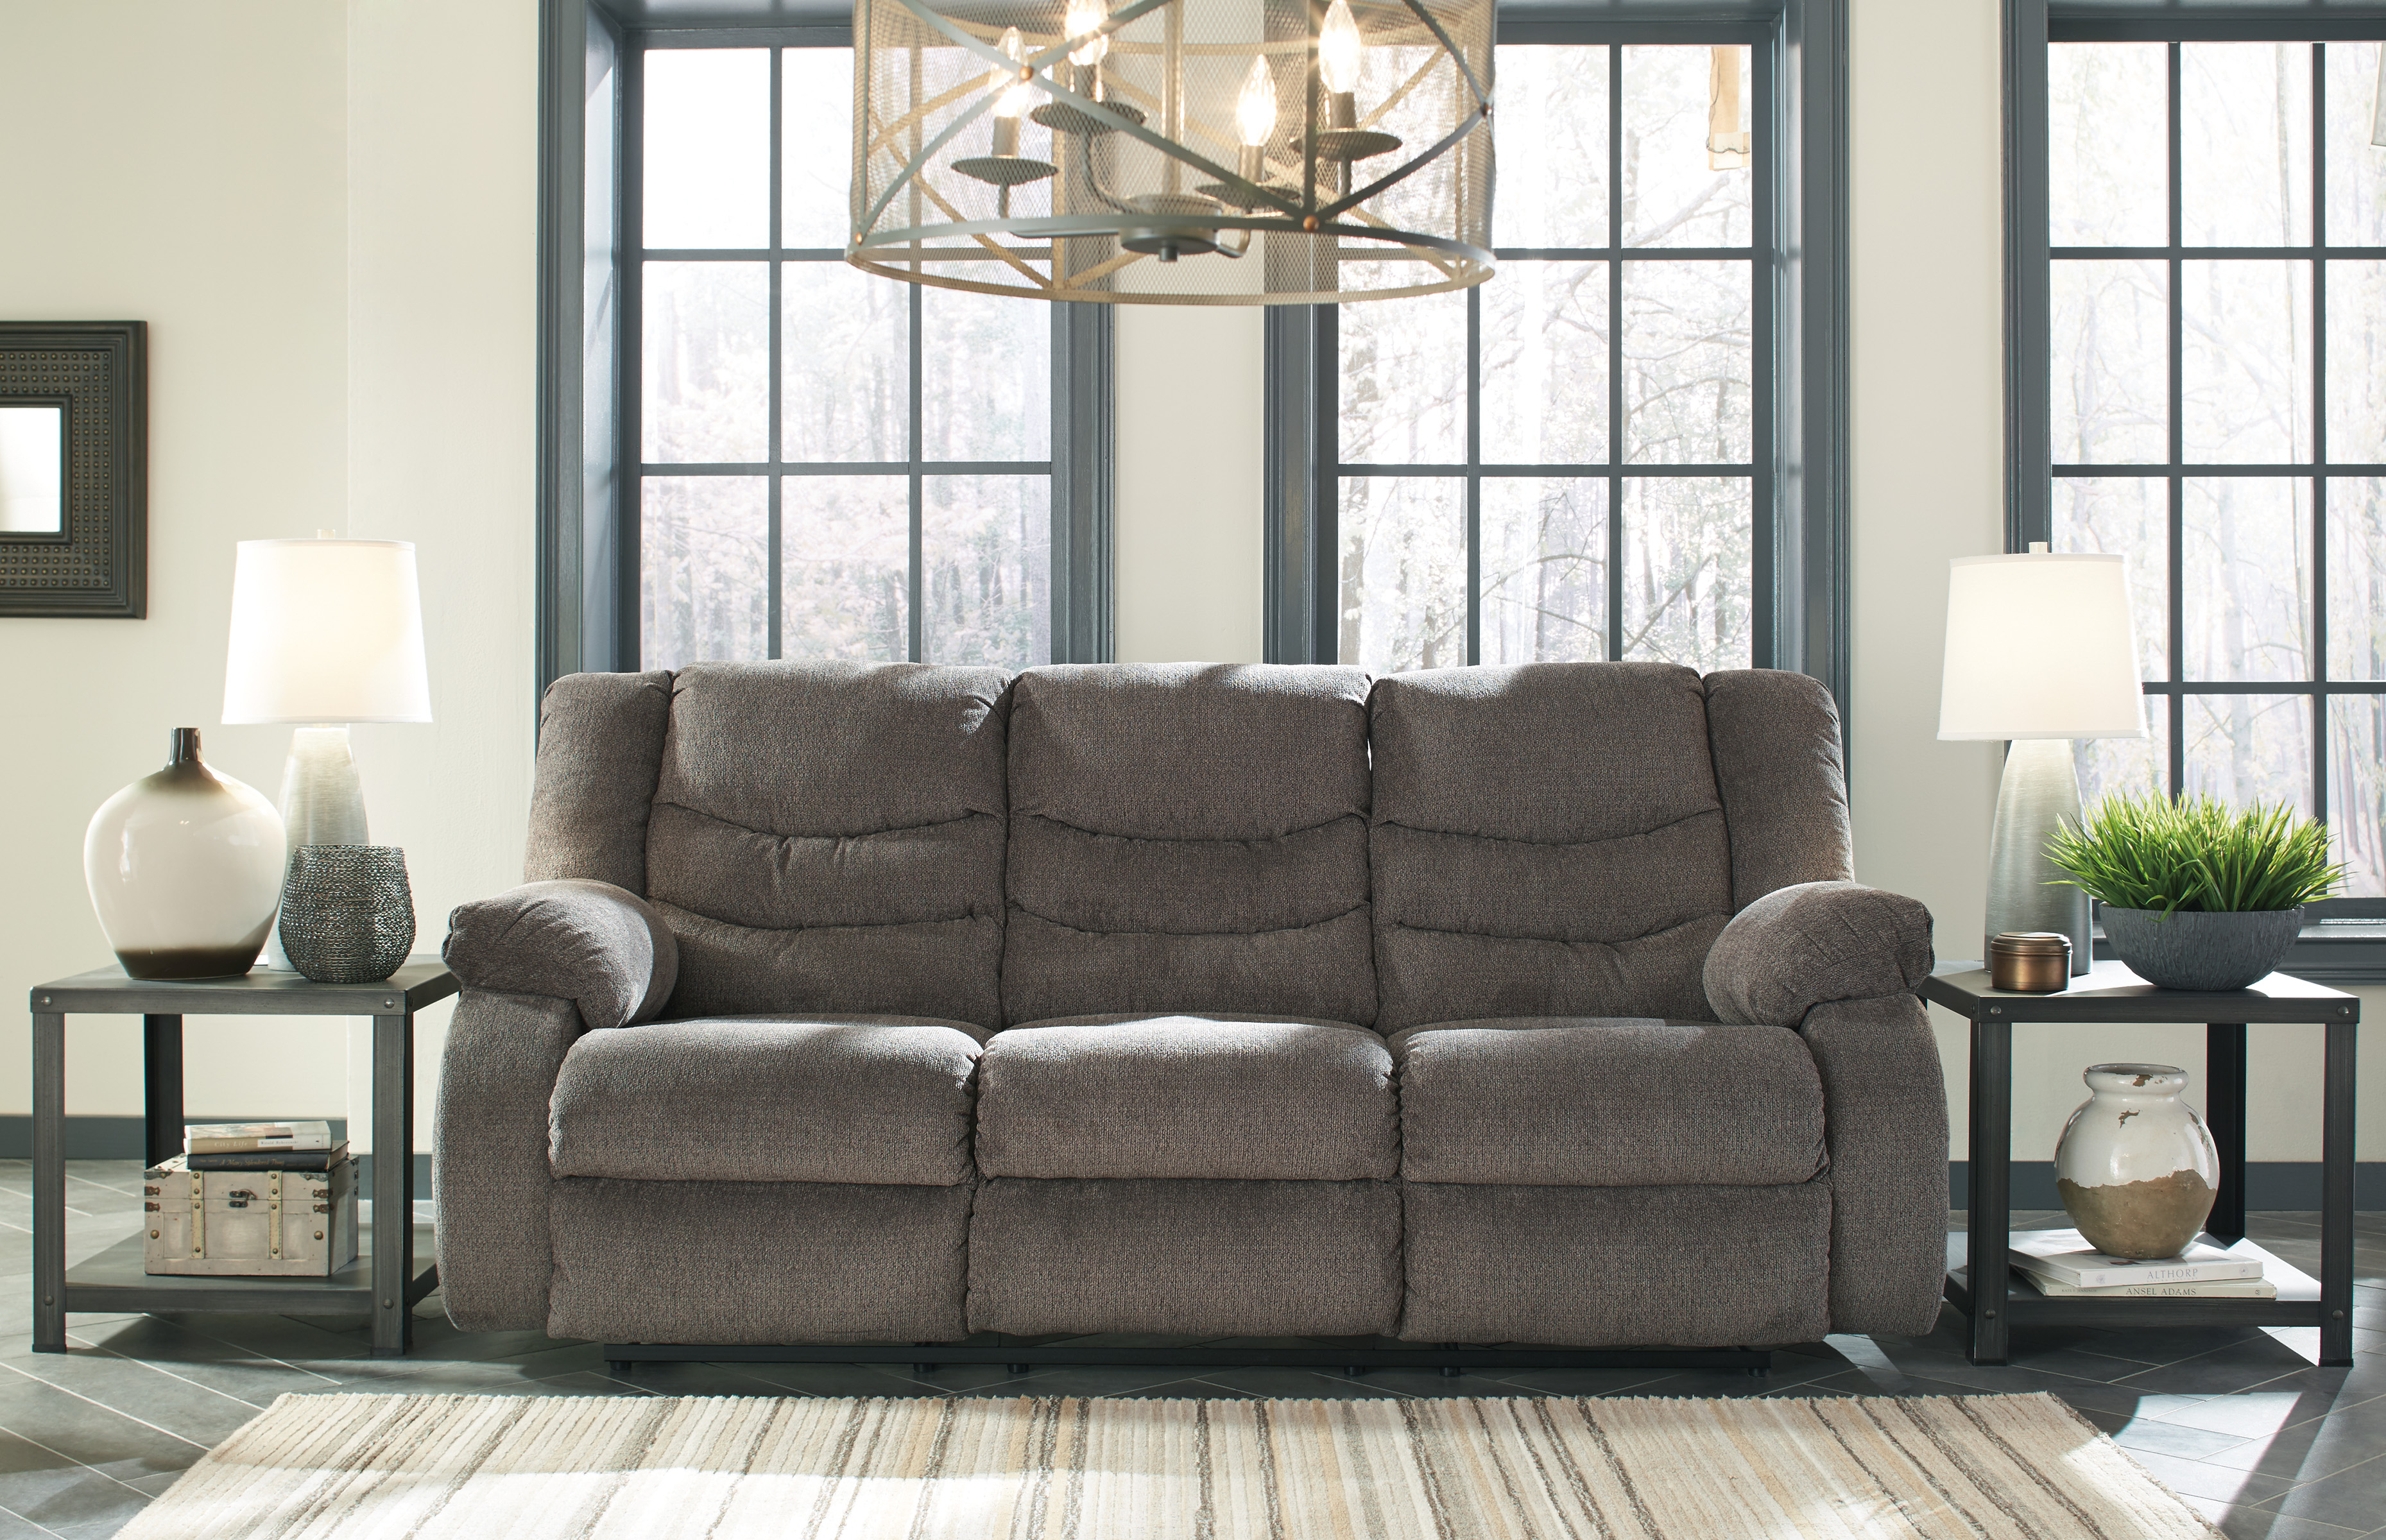 Tulen Grey Reclining Sofa Love All American Furniture Buy 4 Less Open To Public